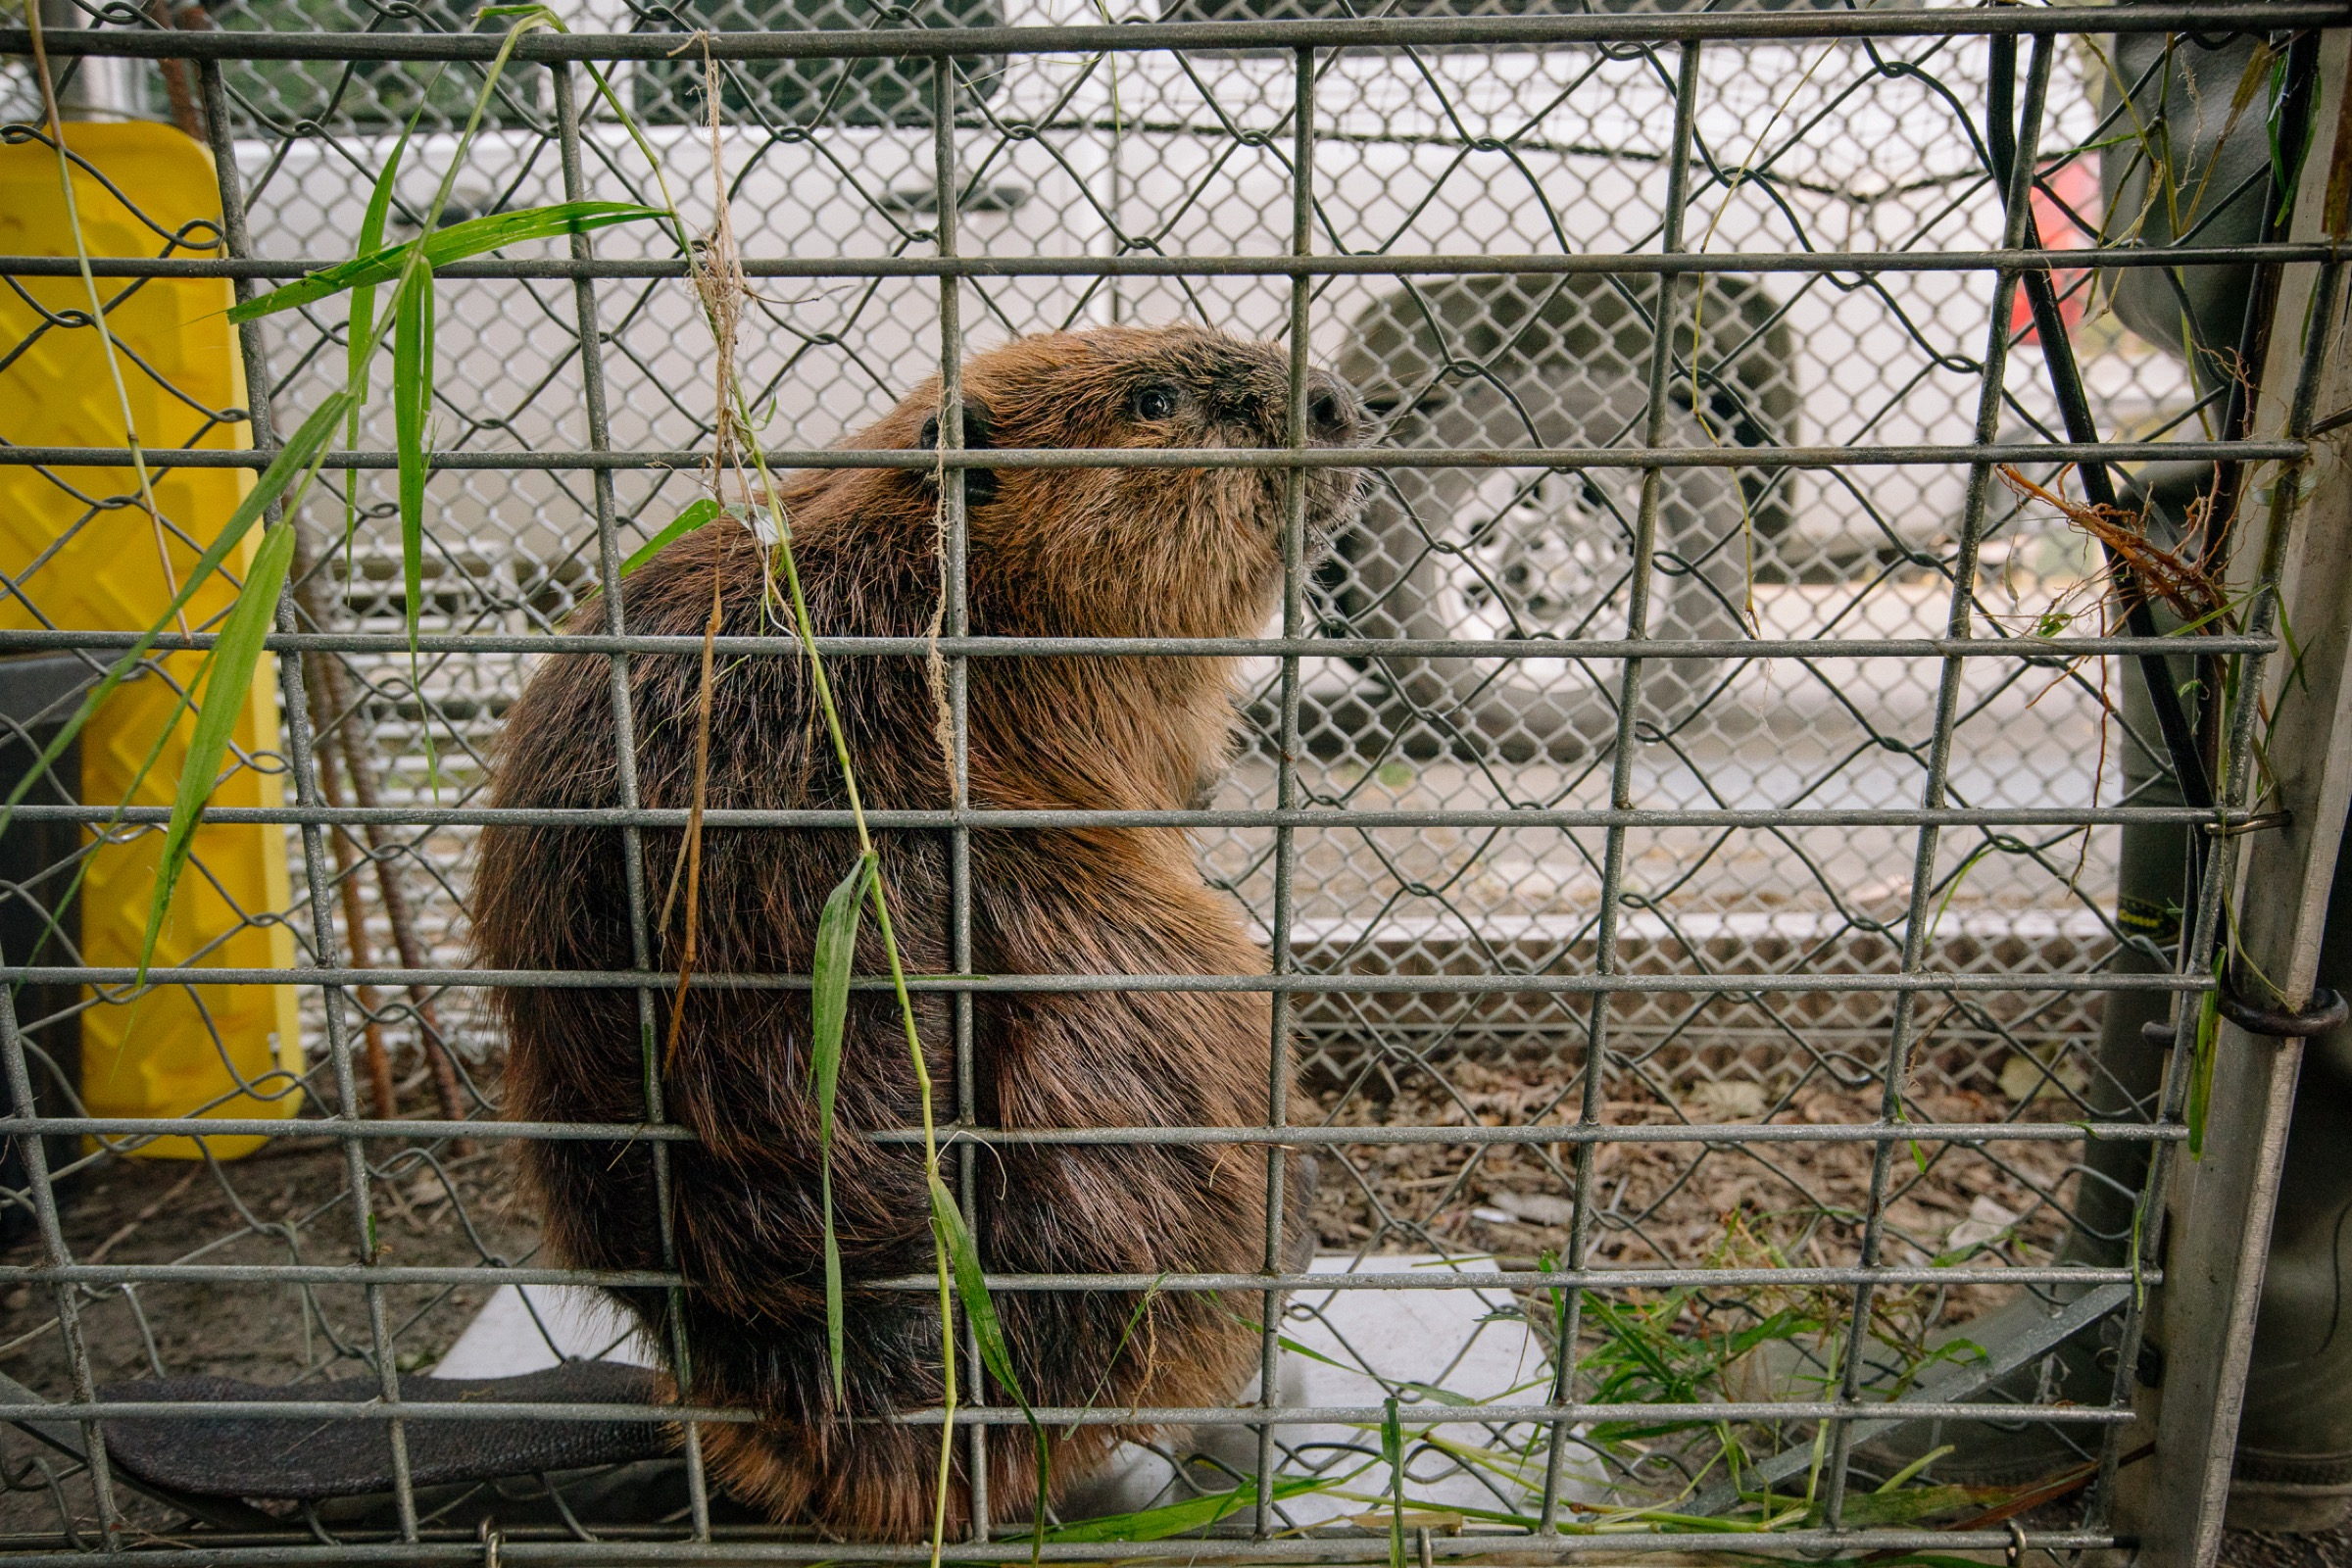 Biologists weigh and process a freshly caught beaver that will stay at the Tulalip Tribe's fish hatchery until it can be paired up with other beavers and released back into an area where its ecological engineering prowess will be better appreciated.